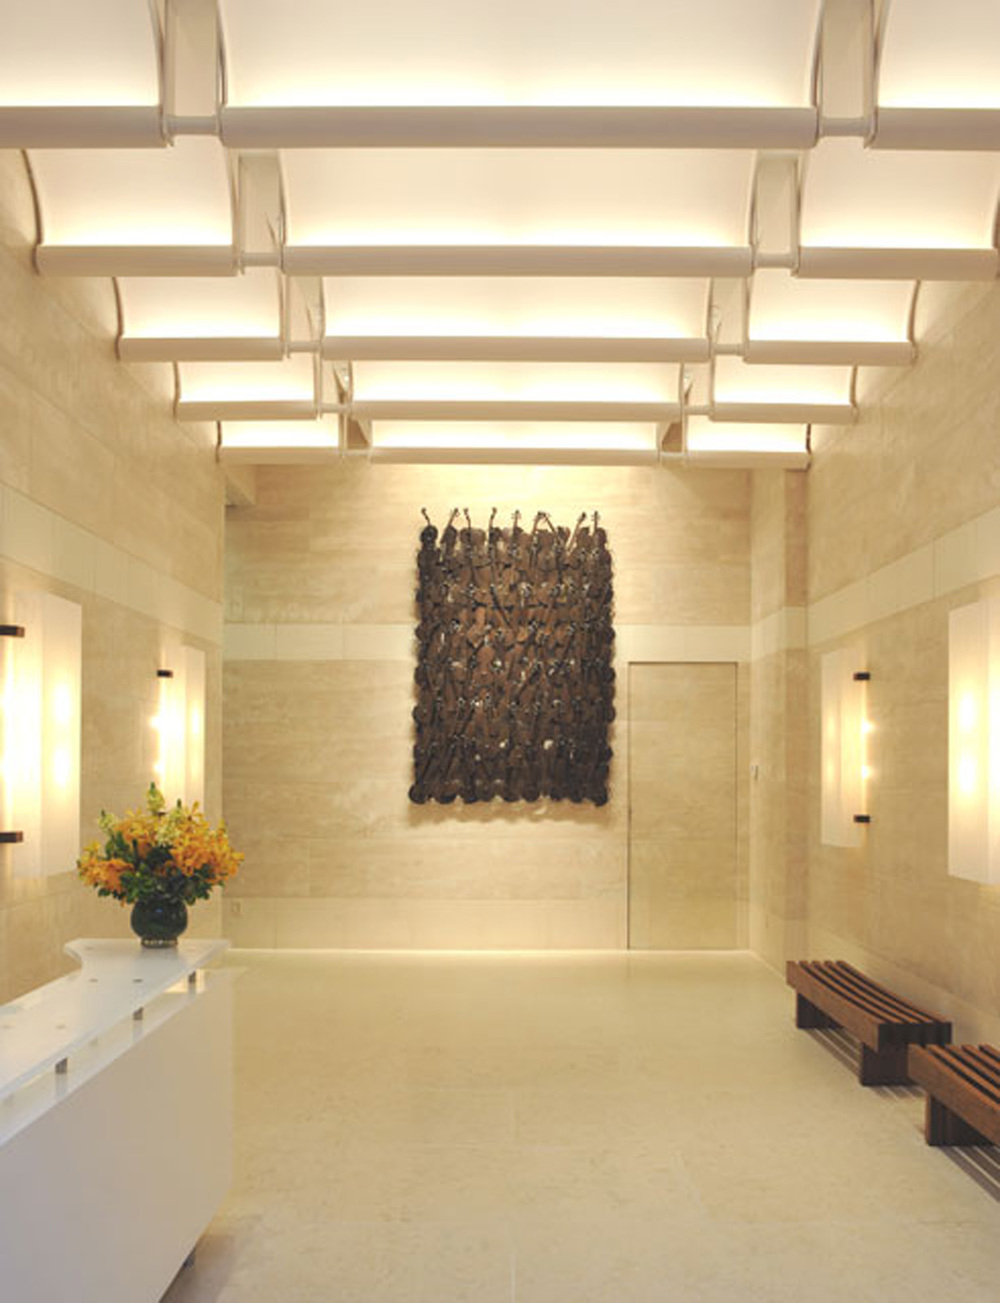 1080_MADISON_AVE_LOBBY_PIC_1_MAIN.jpg